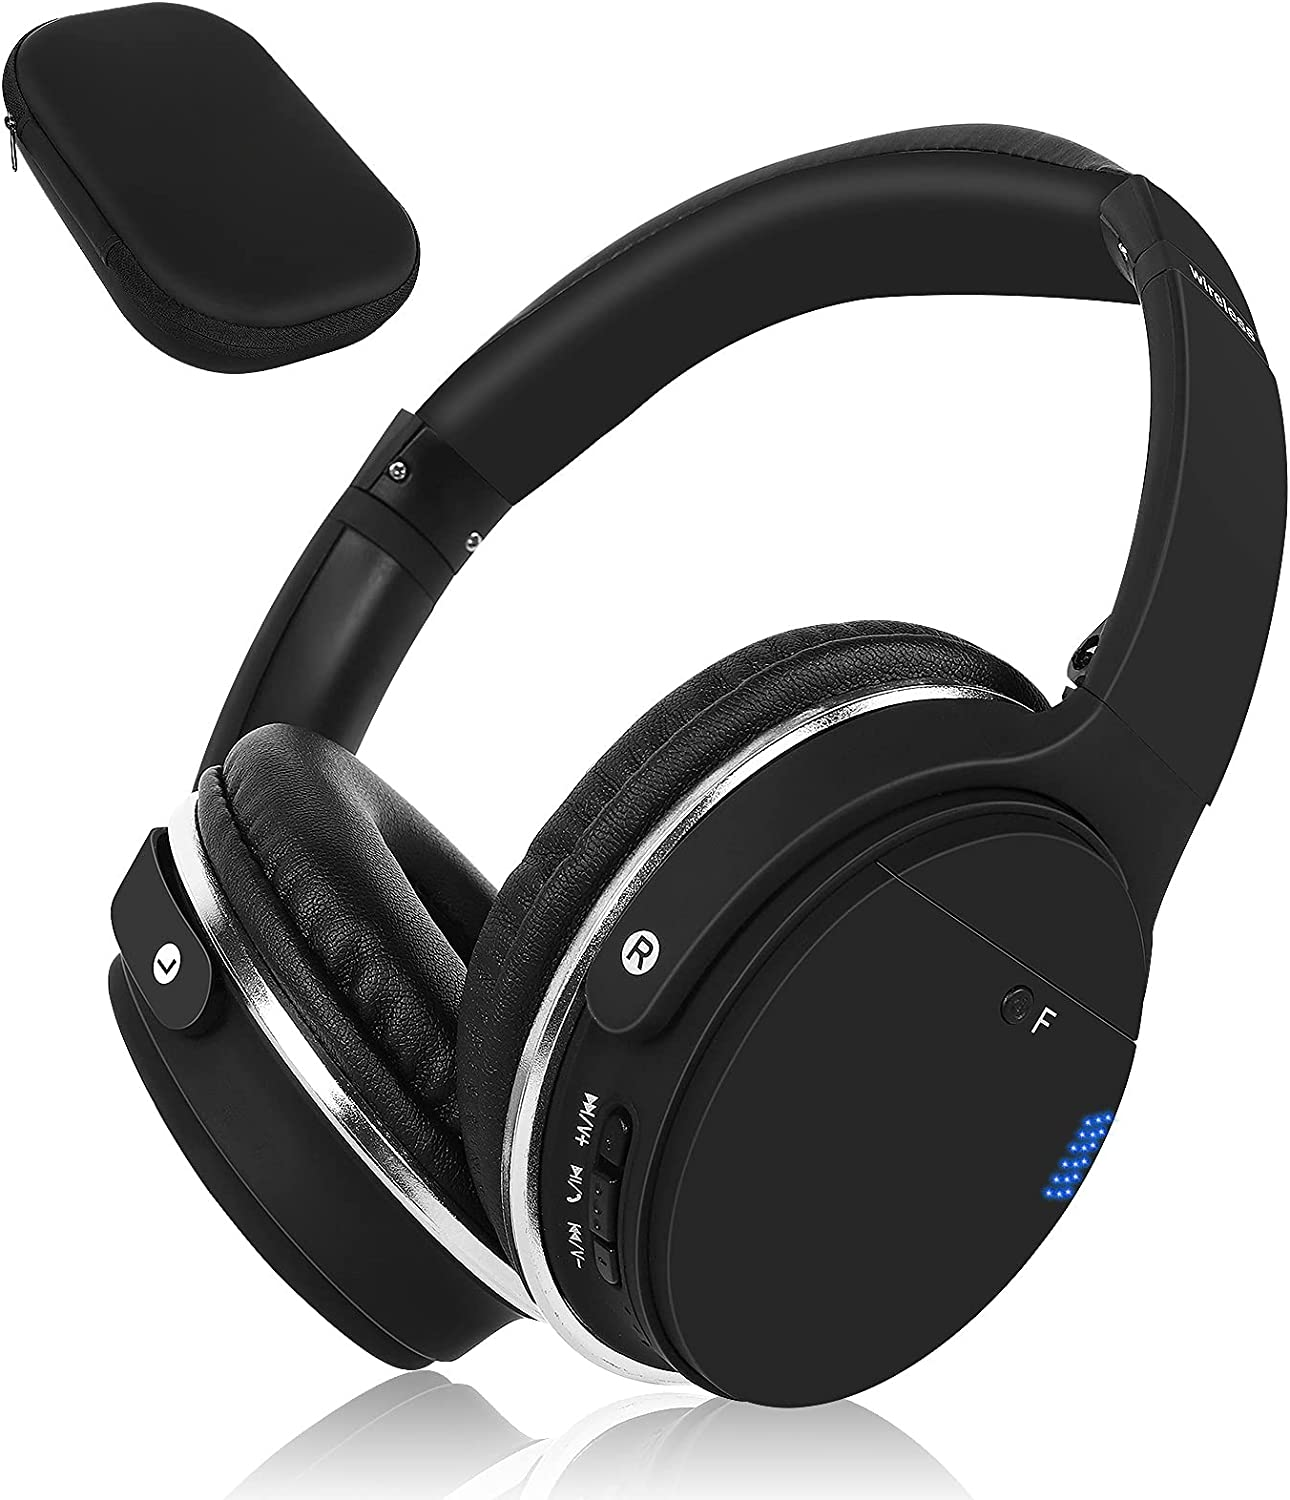 Translated UrbanX UX35 Wireless Industry Leading M Challenge the lowest price Overhead with Headphones